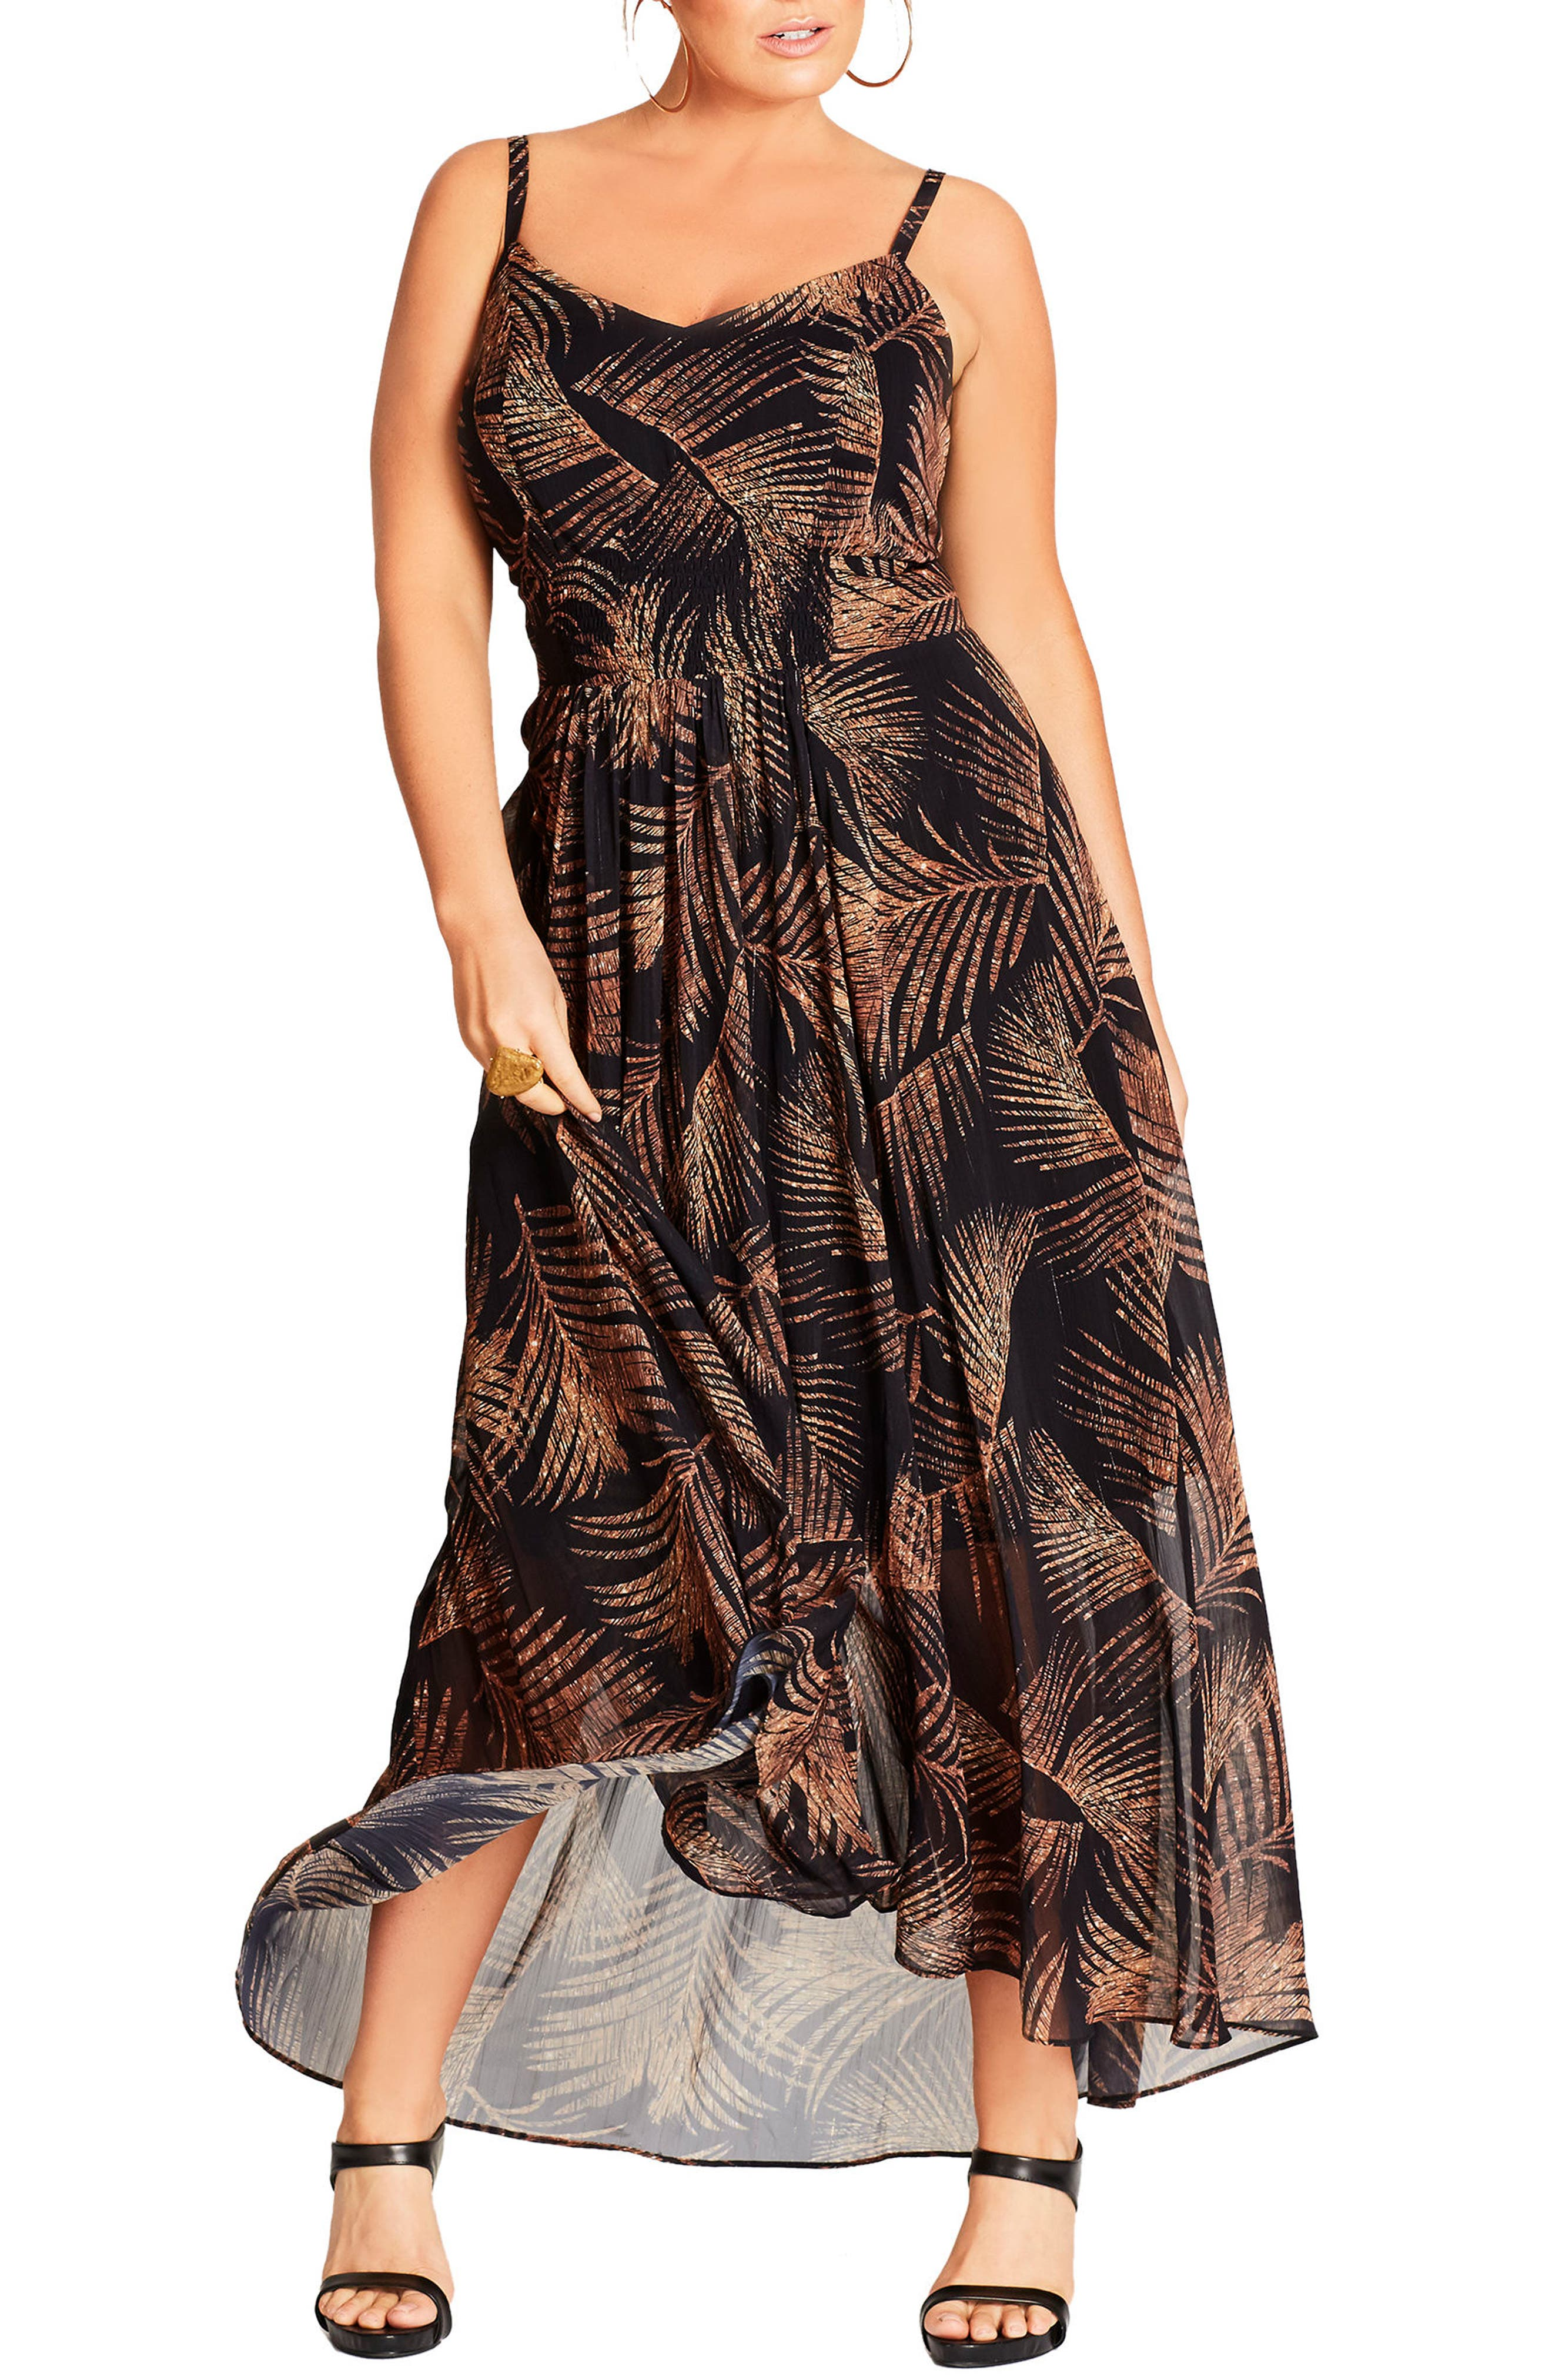 Alternate Image 1 Selected - City Chic Party Time Print Chiffon Maxi Dress (Plus Size)